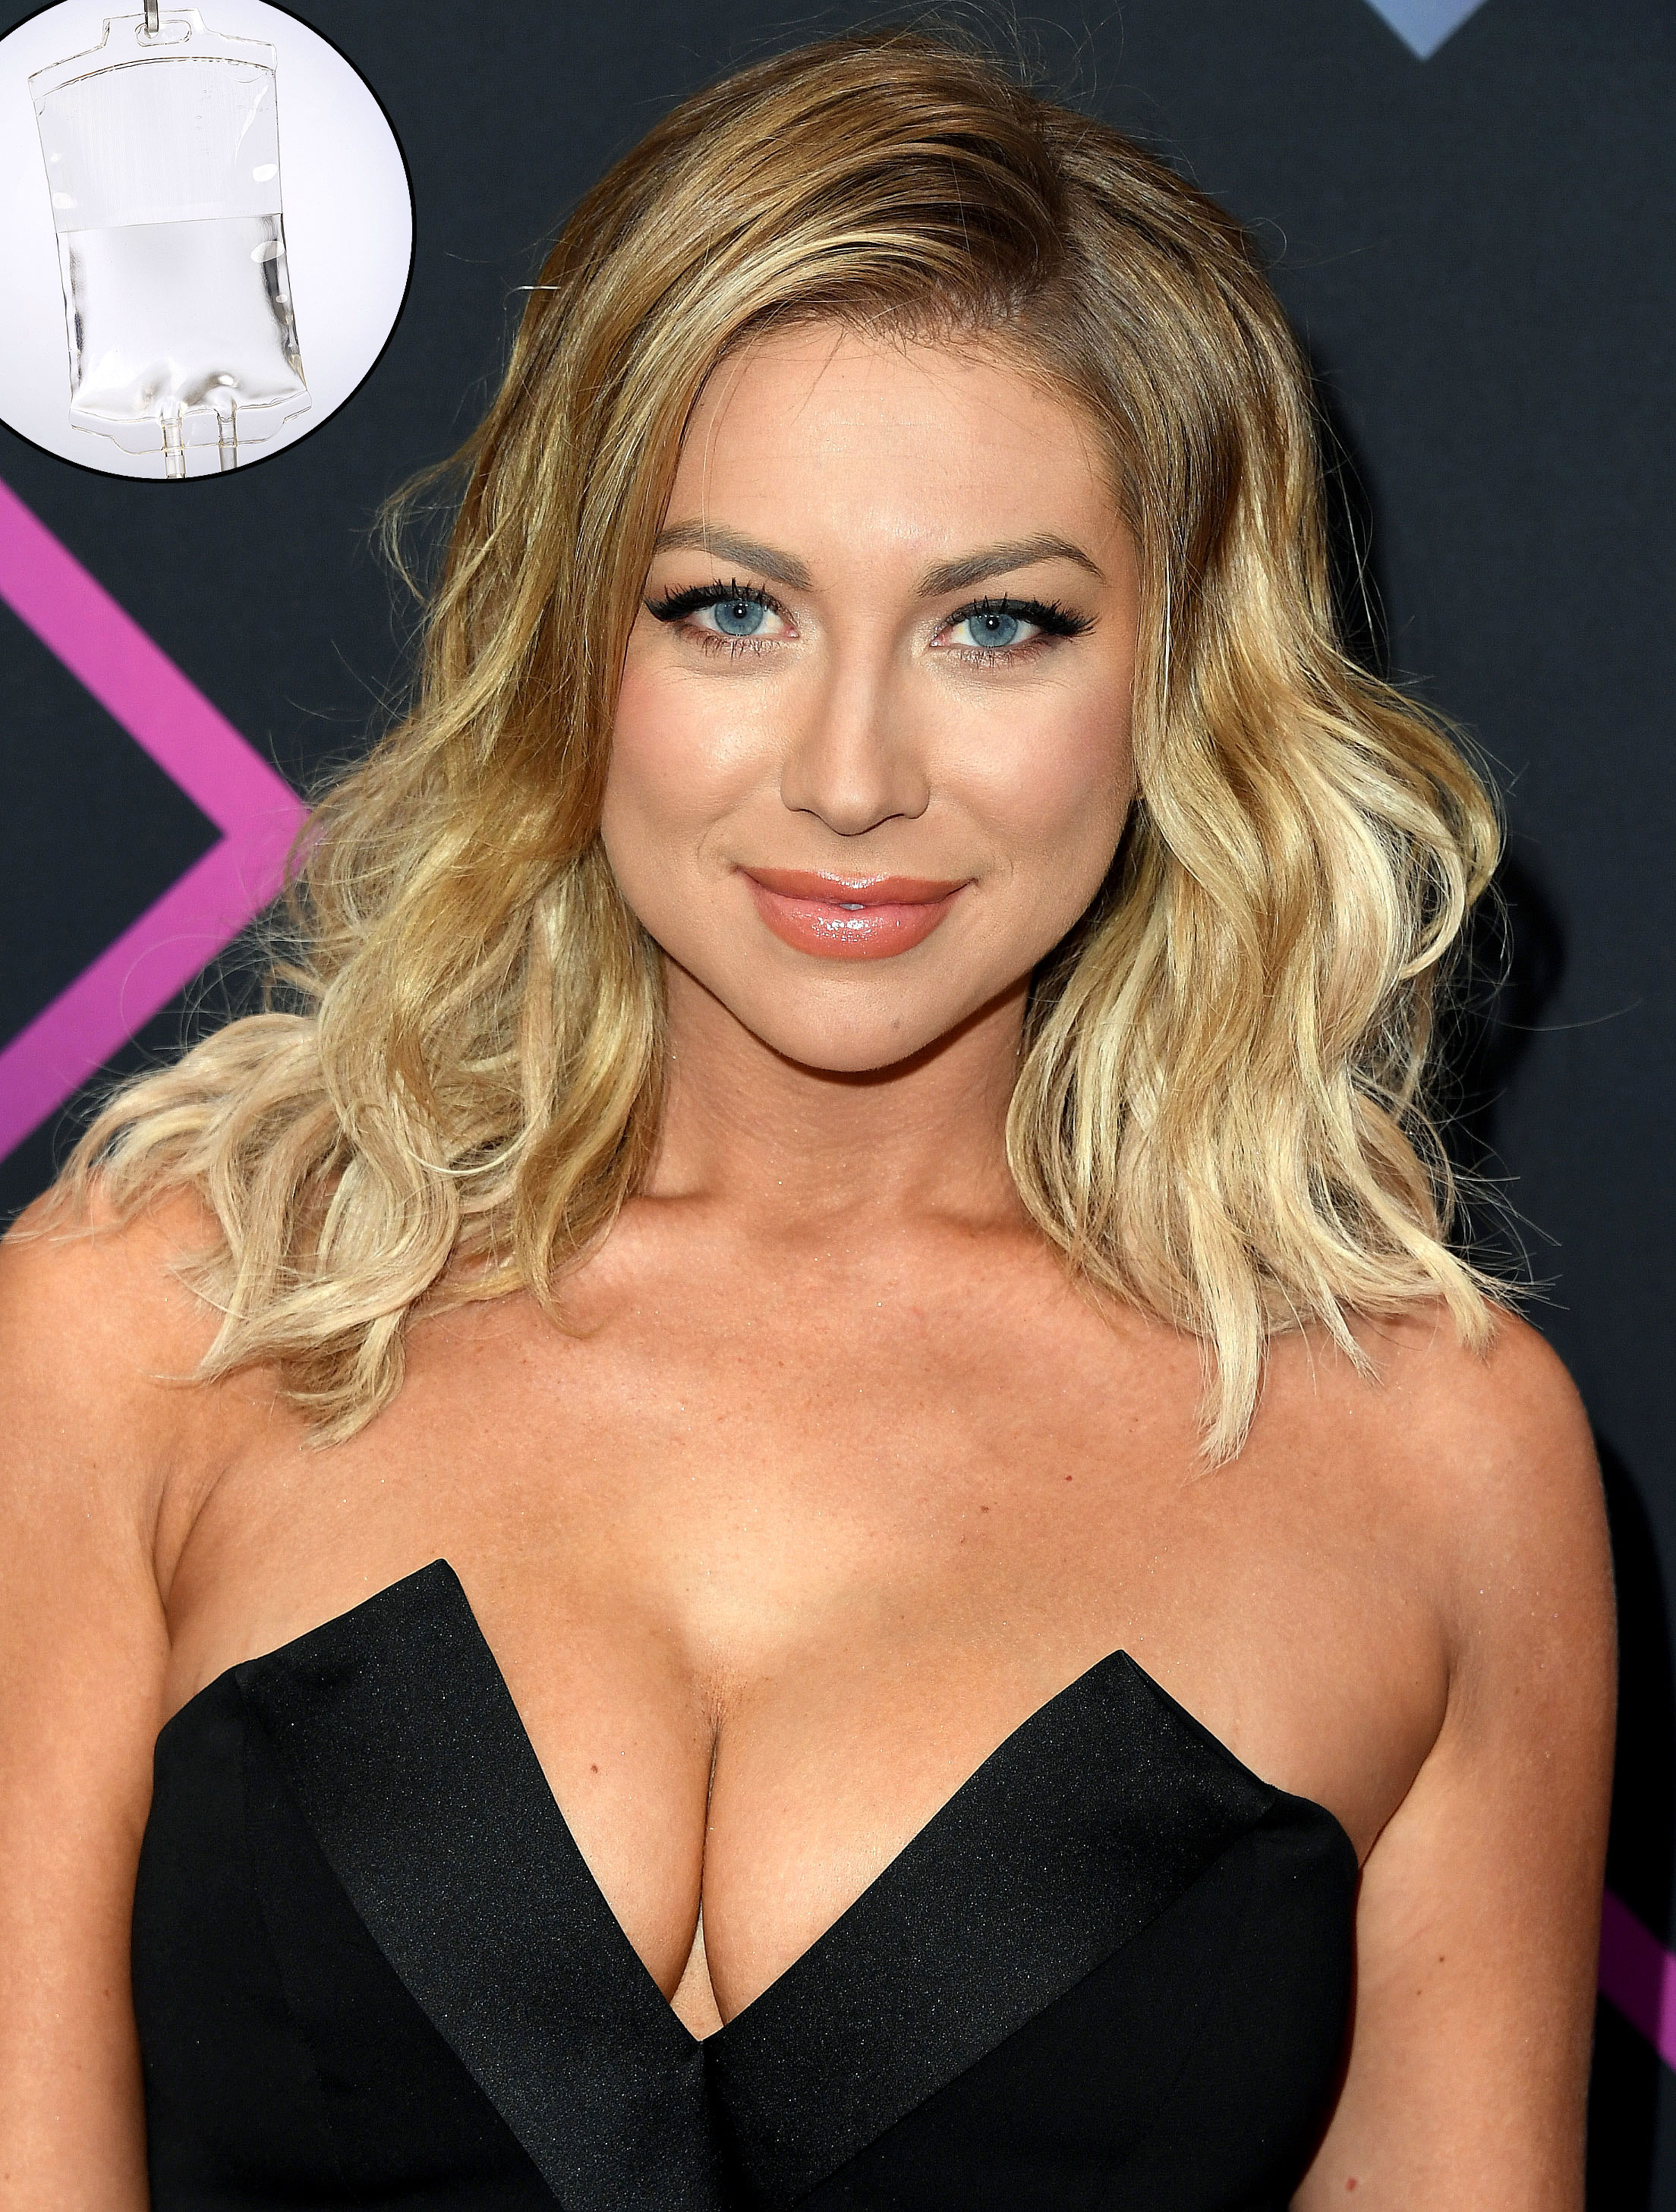 """Stassi Schroeder Stars' Hangover Cures IV drip - The Next Level Basic author credits IV drips and hangover patches for her ability to throw 'em back. """"I turned 30 and I can't hang as much as I can,"""" she said on SiriusXM's The Michelle Collins Show in April 2019. """"Like, I definitely get IVs on the reg. I get them to come to my house. ... For a hangover, it really does help."""" She also told a fan in February 2018 that she has another trick, tweeting , """"I also use hangover patches, so there's that."""""""